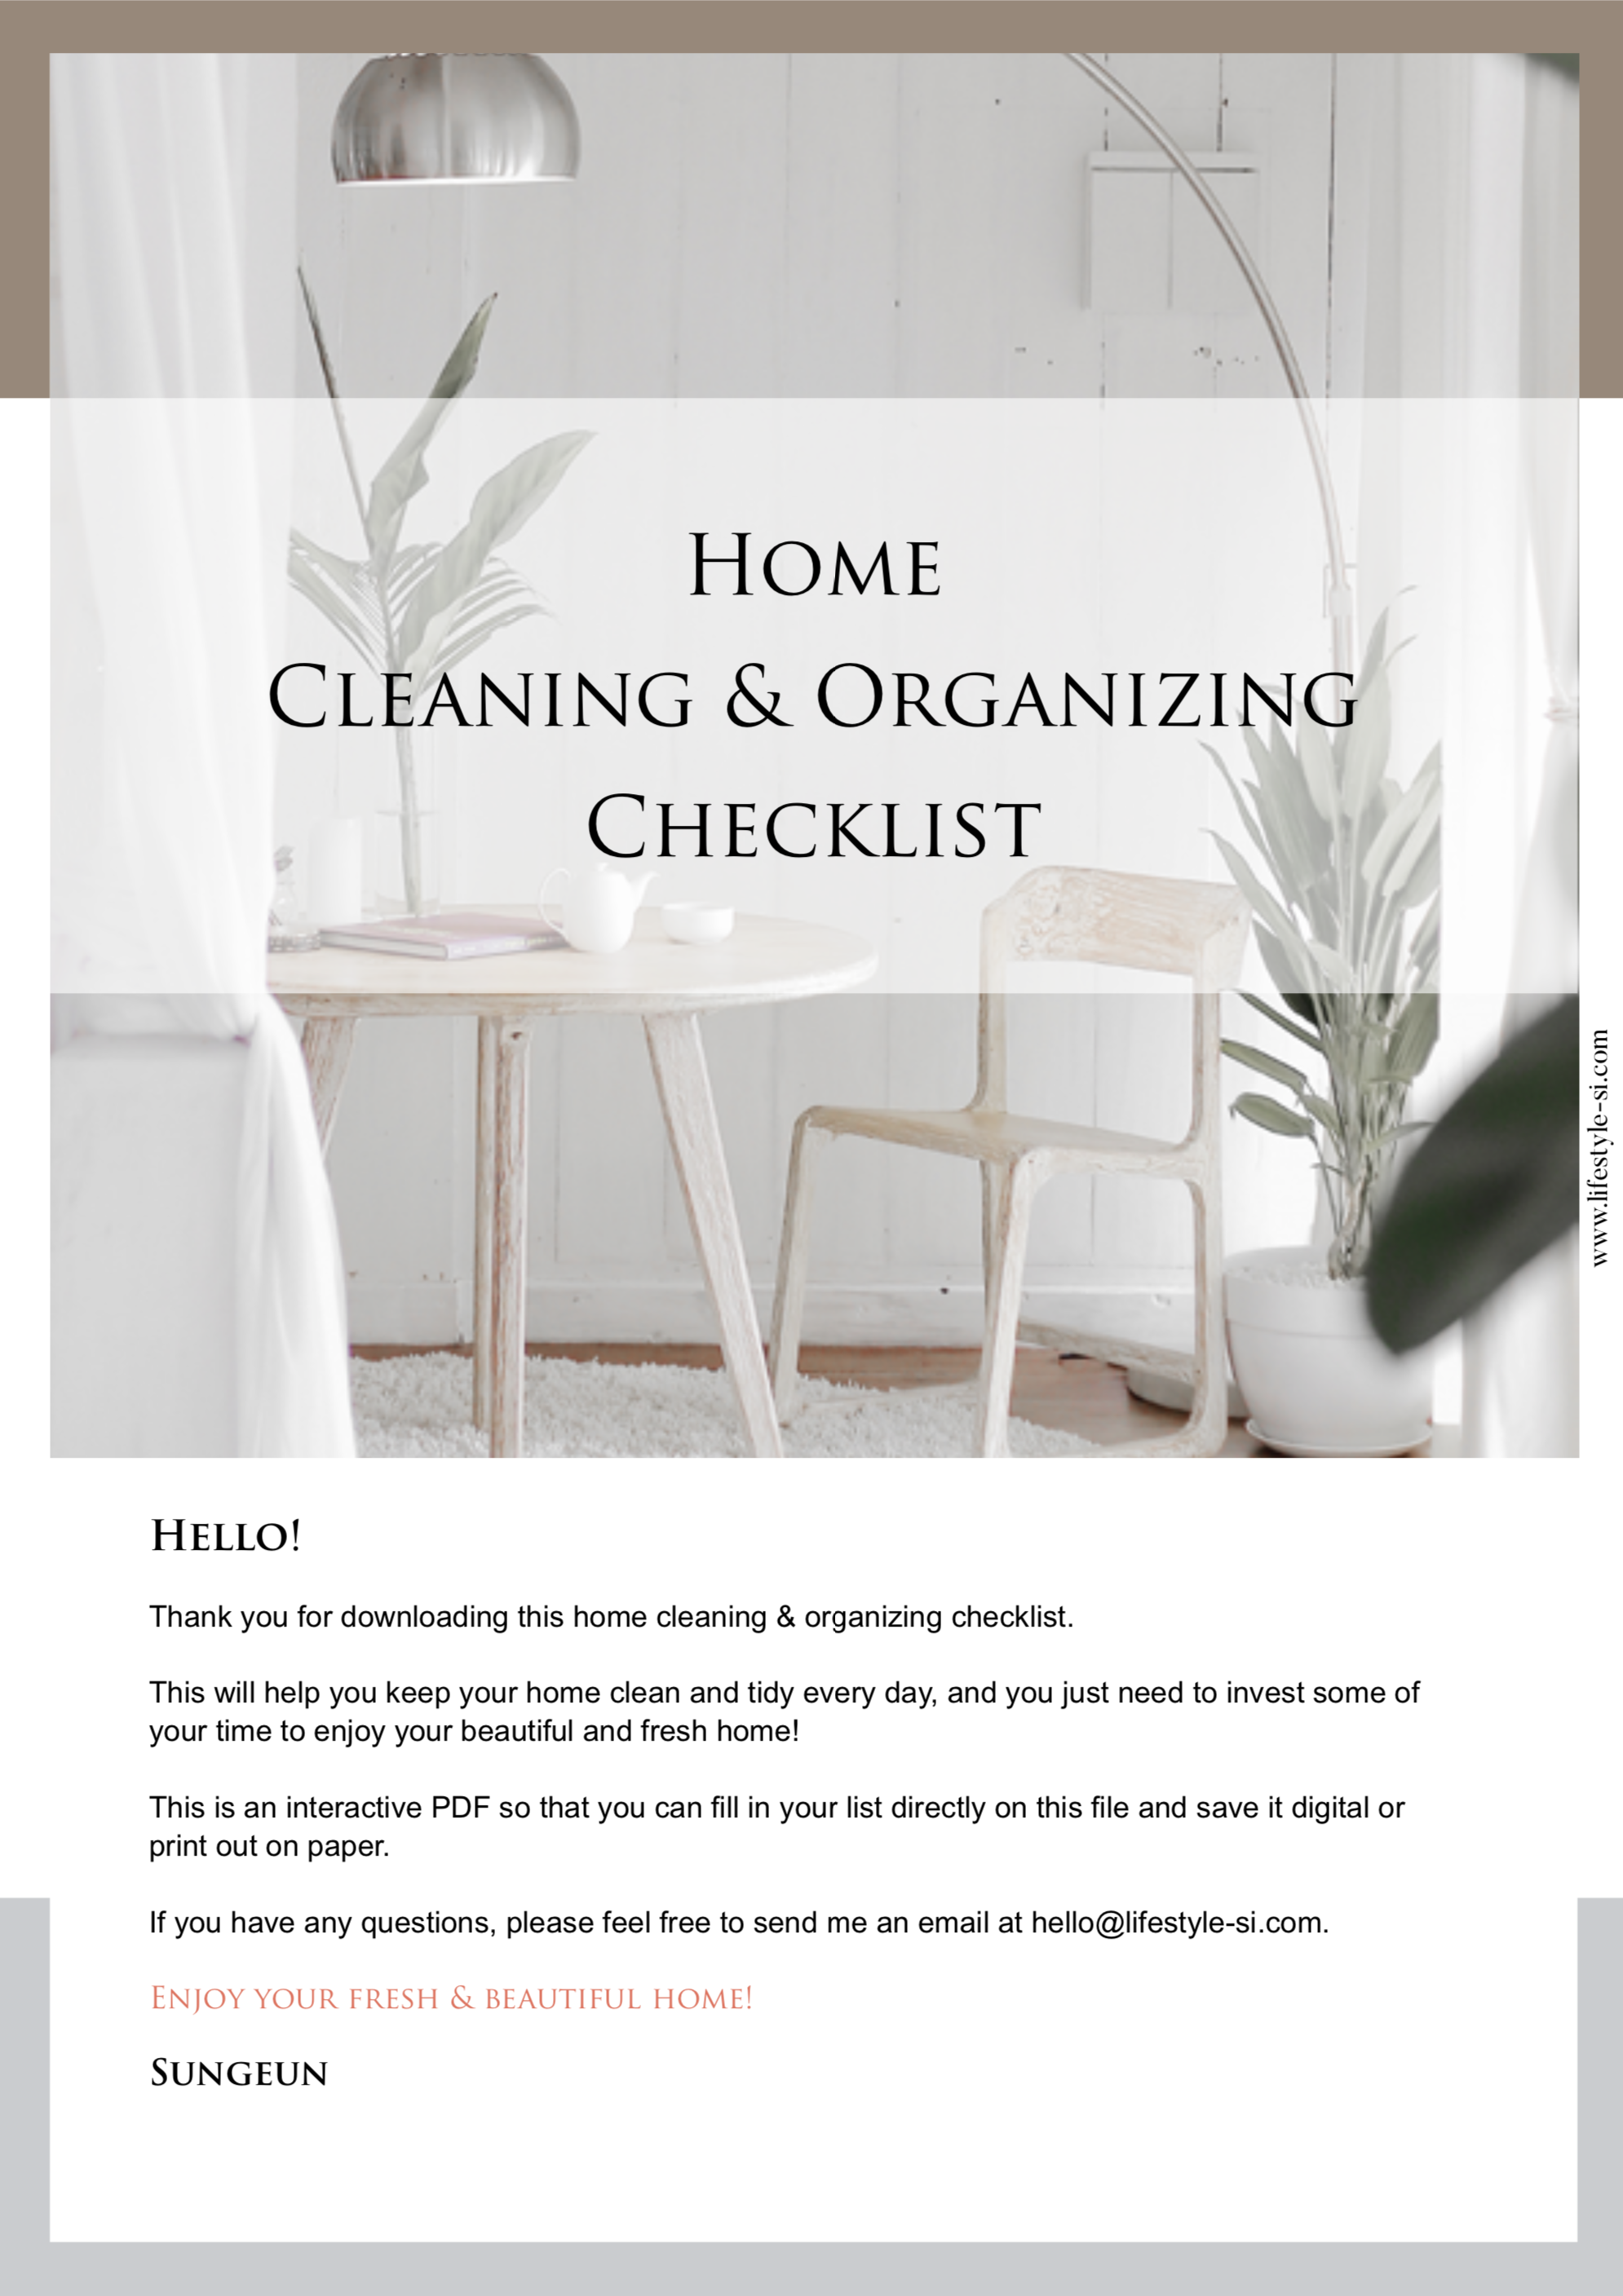 home cleaning & organizing checklist 1.png